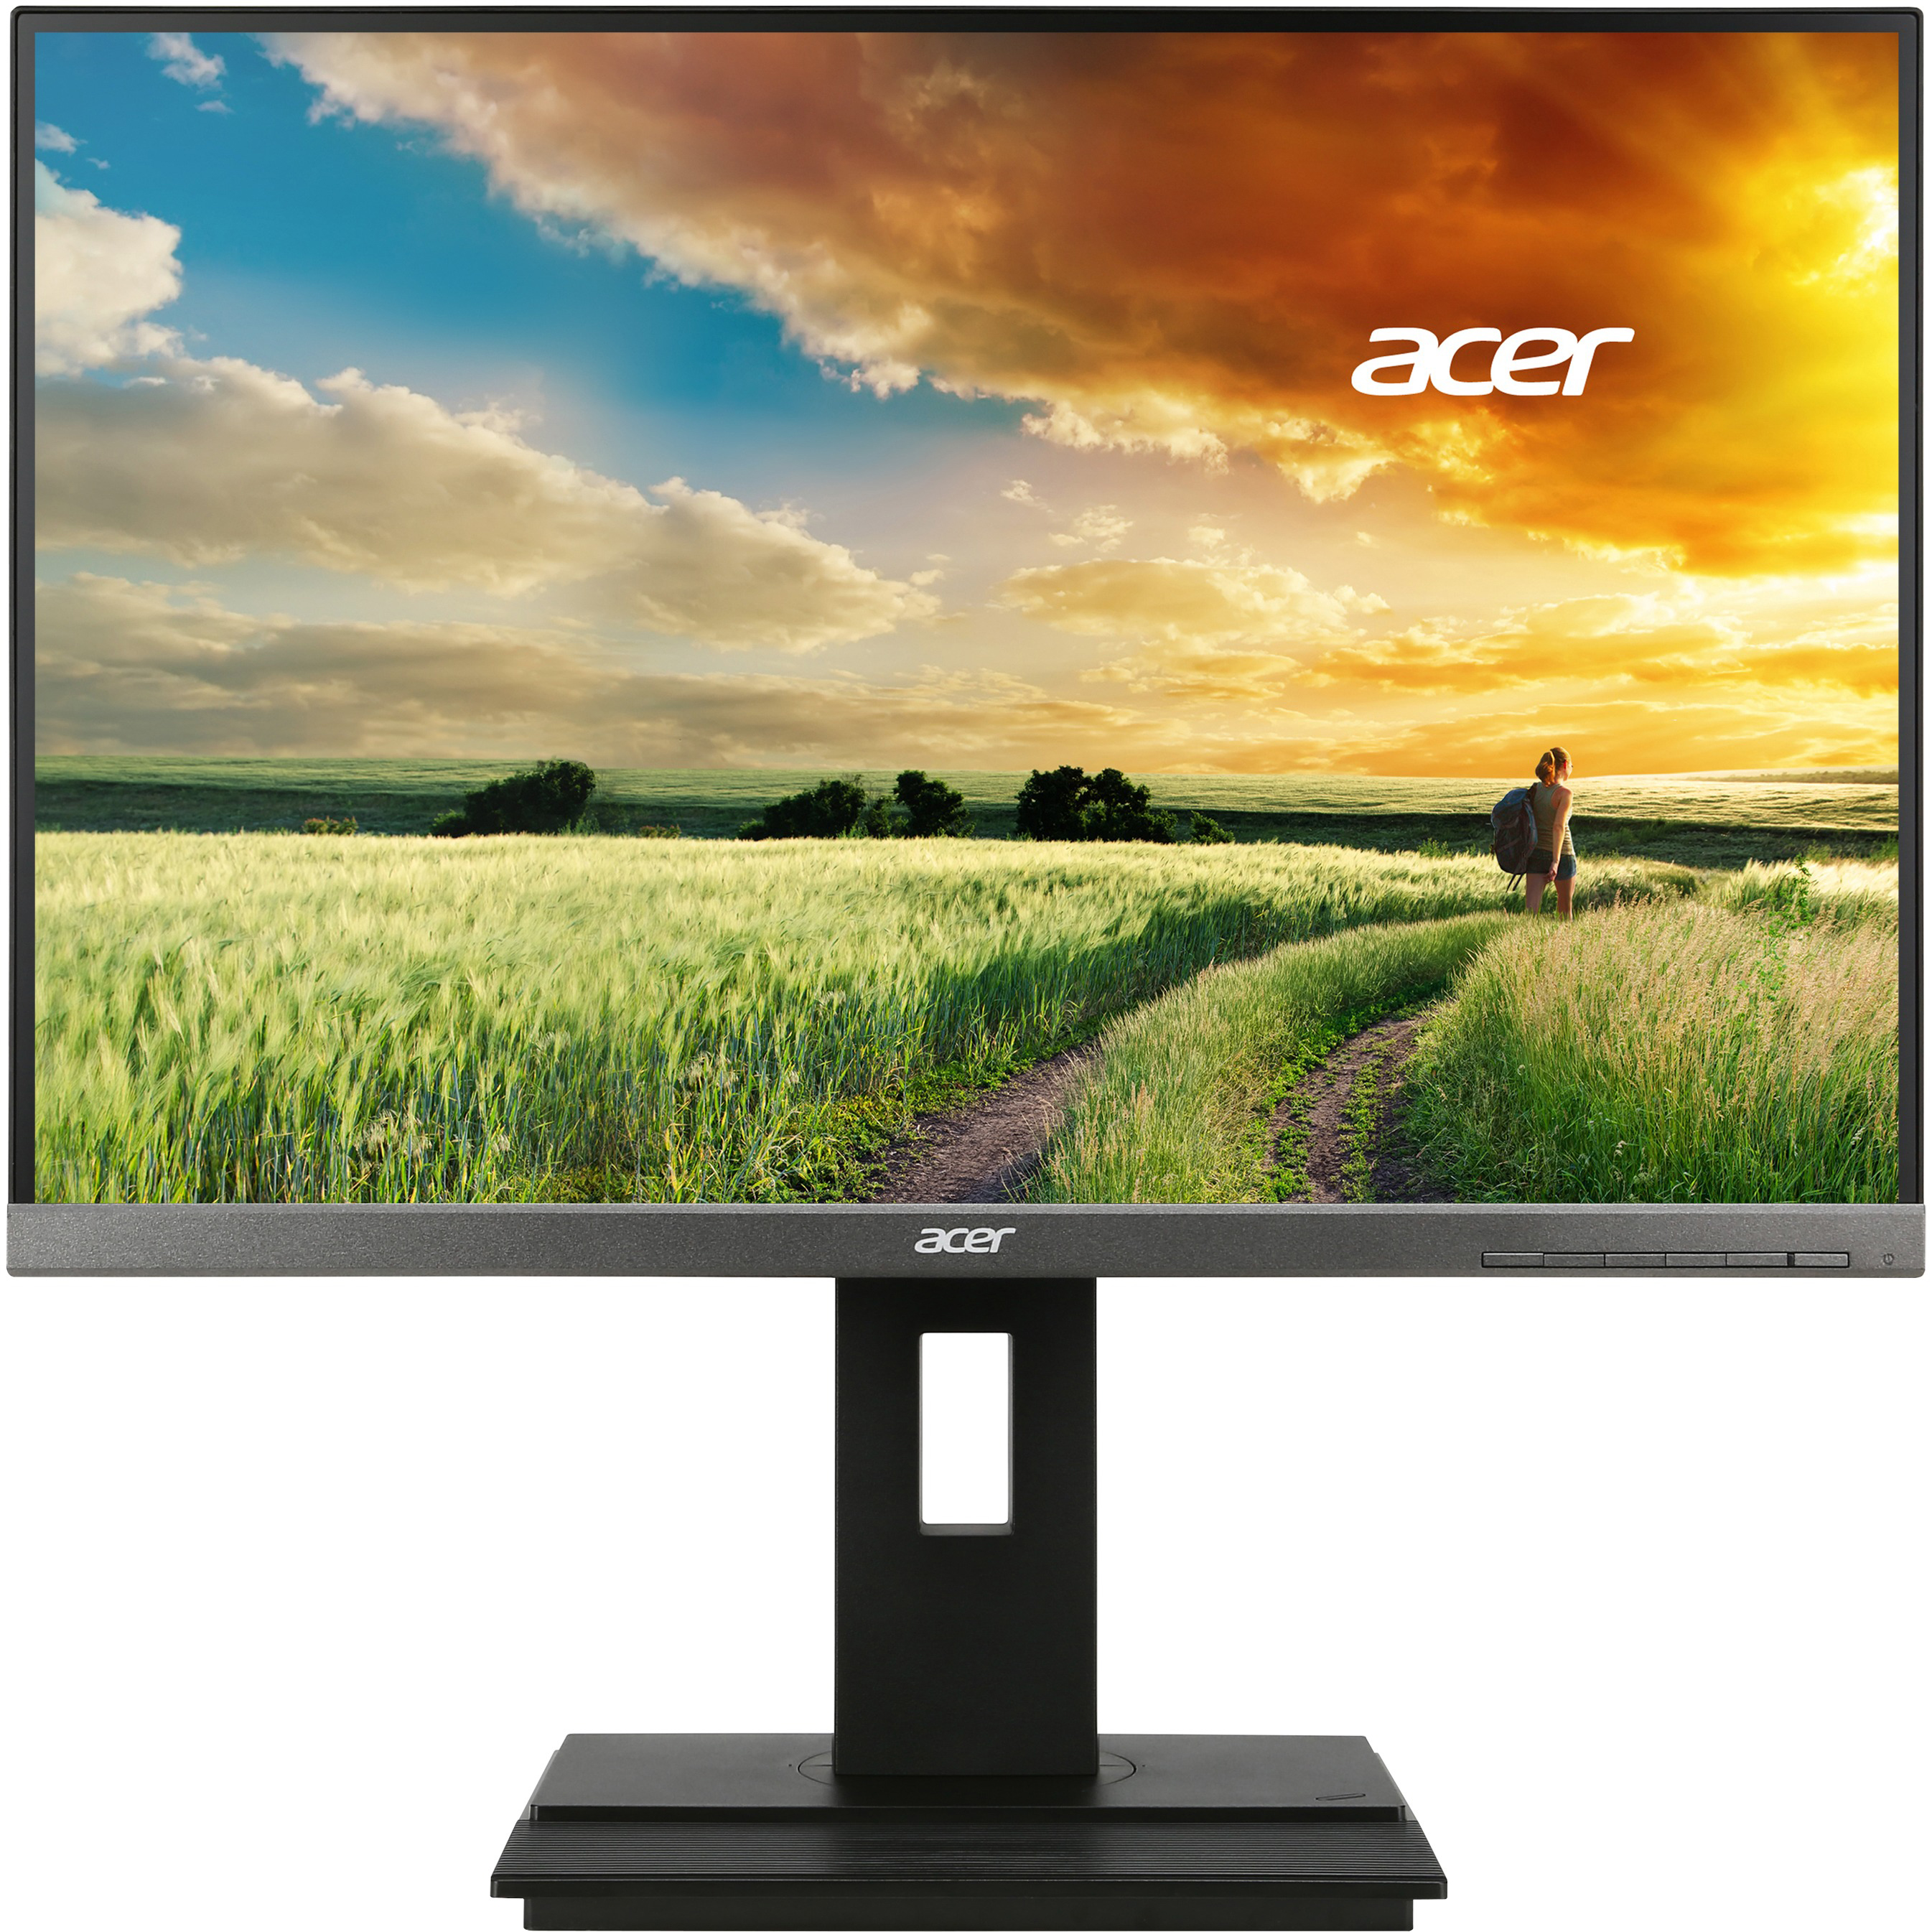 Acer B246WL 24-inch Full HD (1920 x 1200) IPS Widescreen Monitor